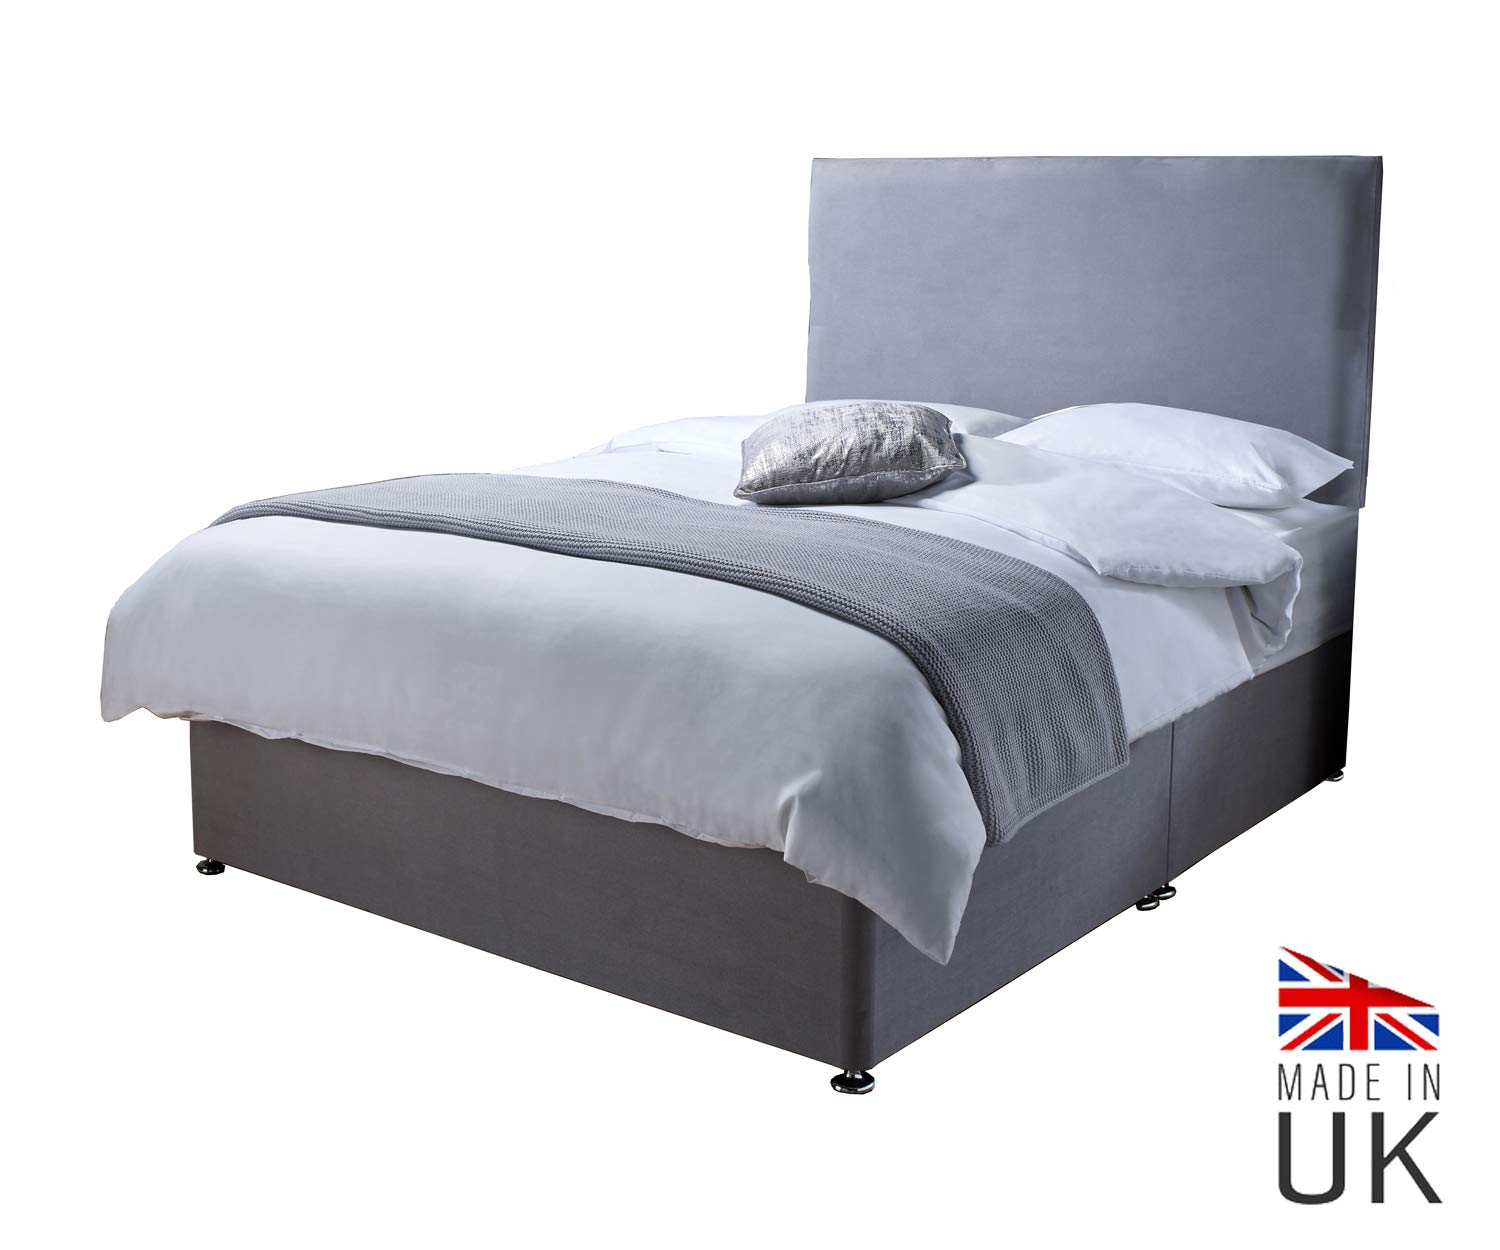 3ft Single 2 Drawers Revive Direct Double Bed in Grey with Plush Mattress Bed with Breathable Fabric Cover Lightweight Bed Premium Quality Double Bed with Mattress and Upholstered Headboard